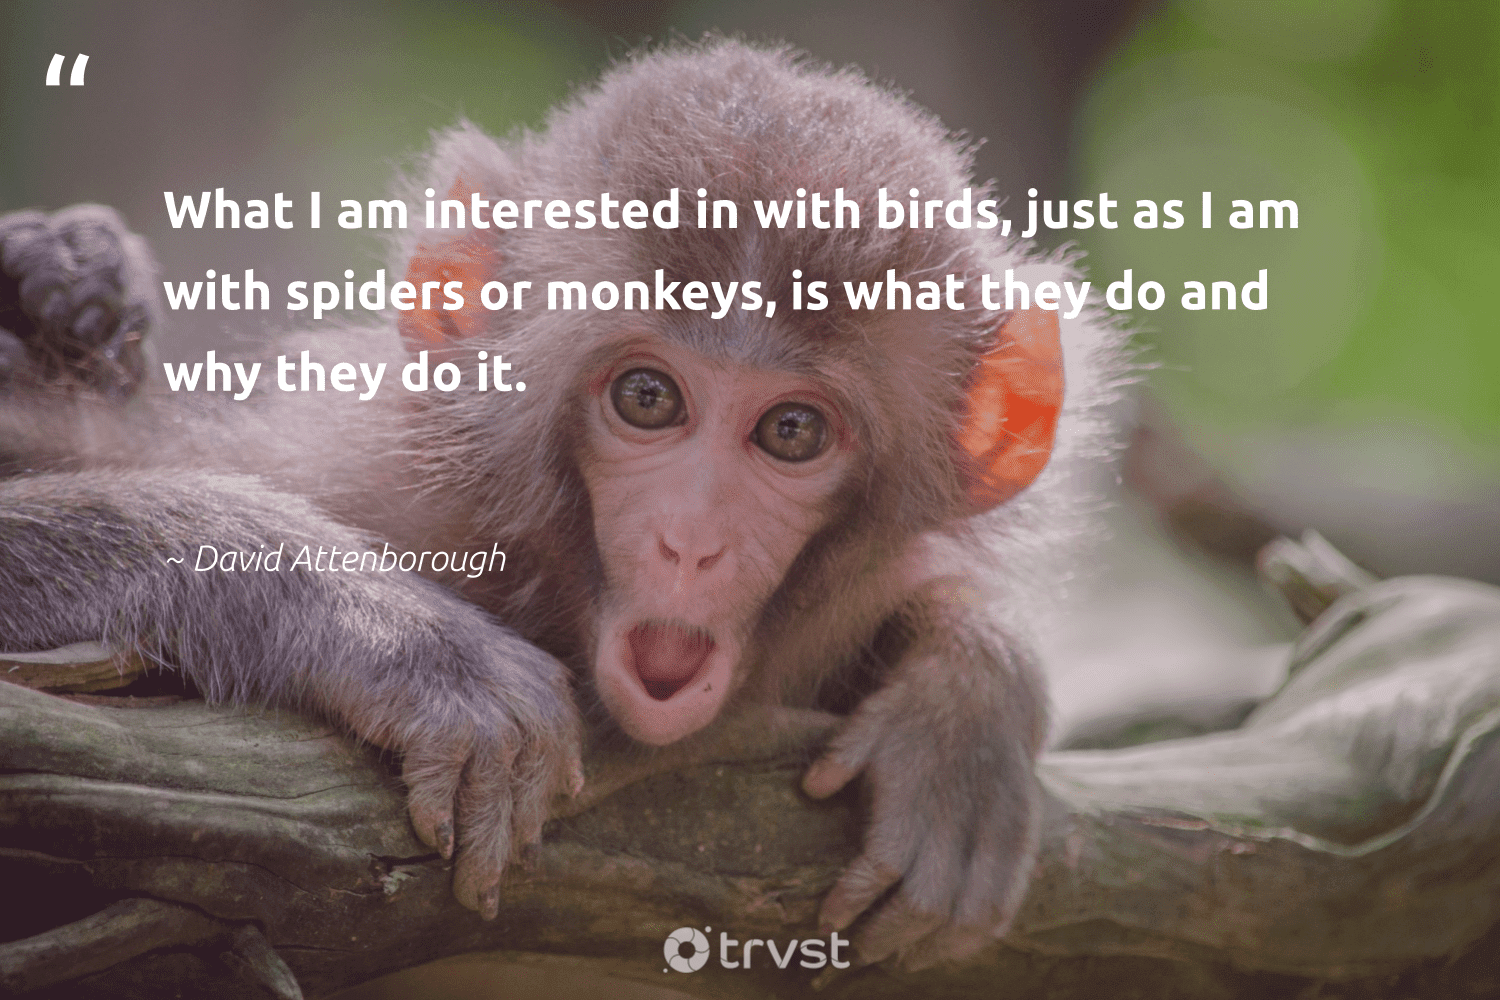 """""""What I am interested in with birds, just as I am with spiders or monkeys, is what they do and why they do it.""""  - David Attenborough #trvst #quotes #birds #monkeys #bird #conservation #nature #gogreen #monkey #geology #bethechange #wild"""